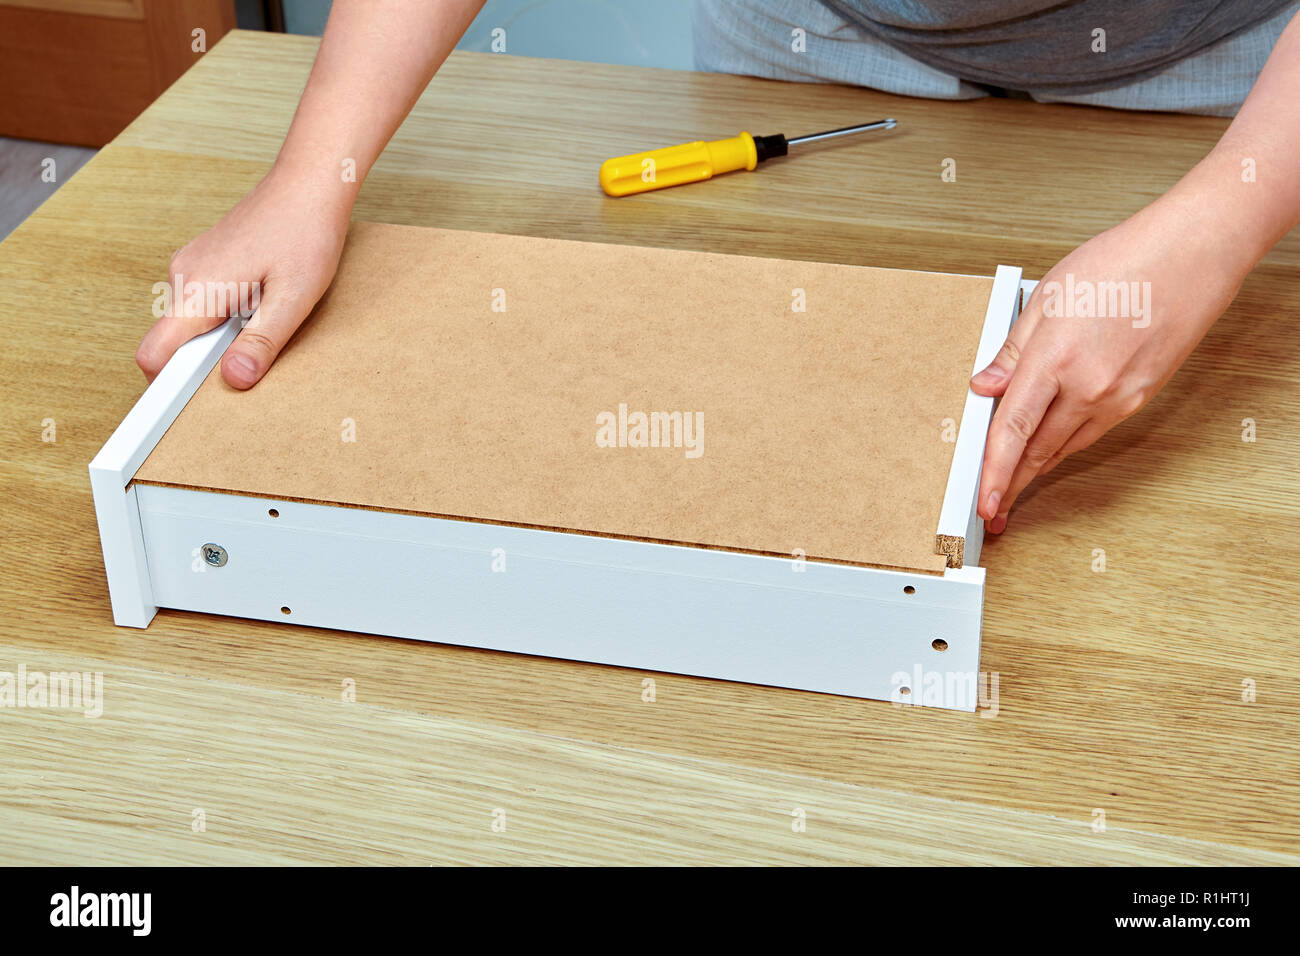 The Handyman Puts Together Two Parts Of A Wooden Drawer Made Of